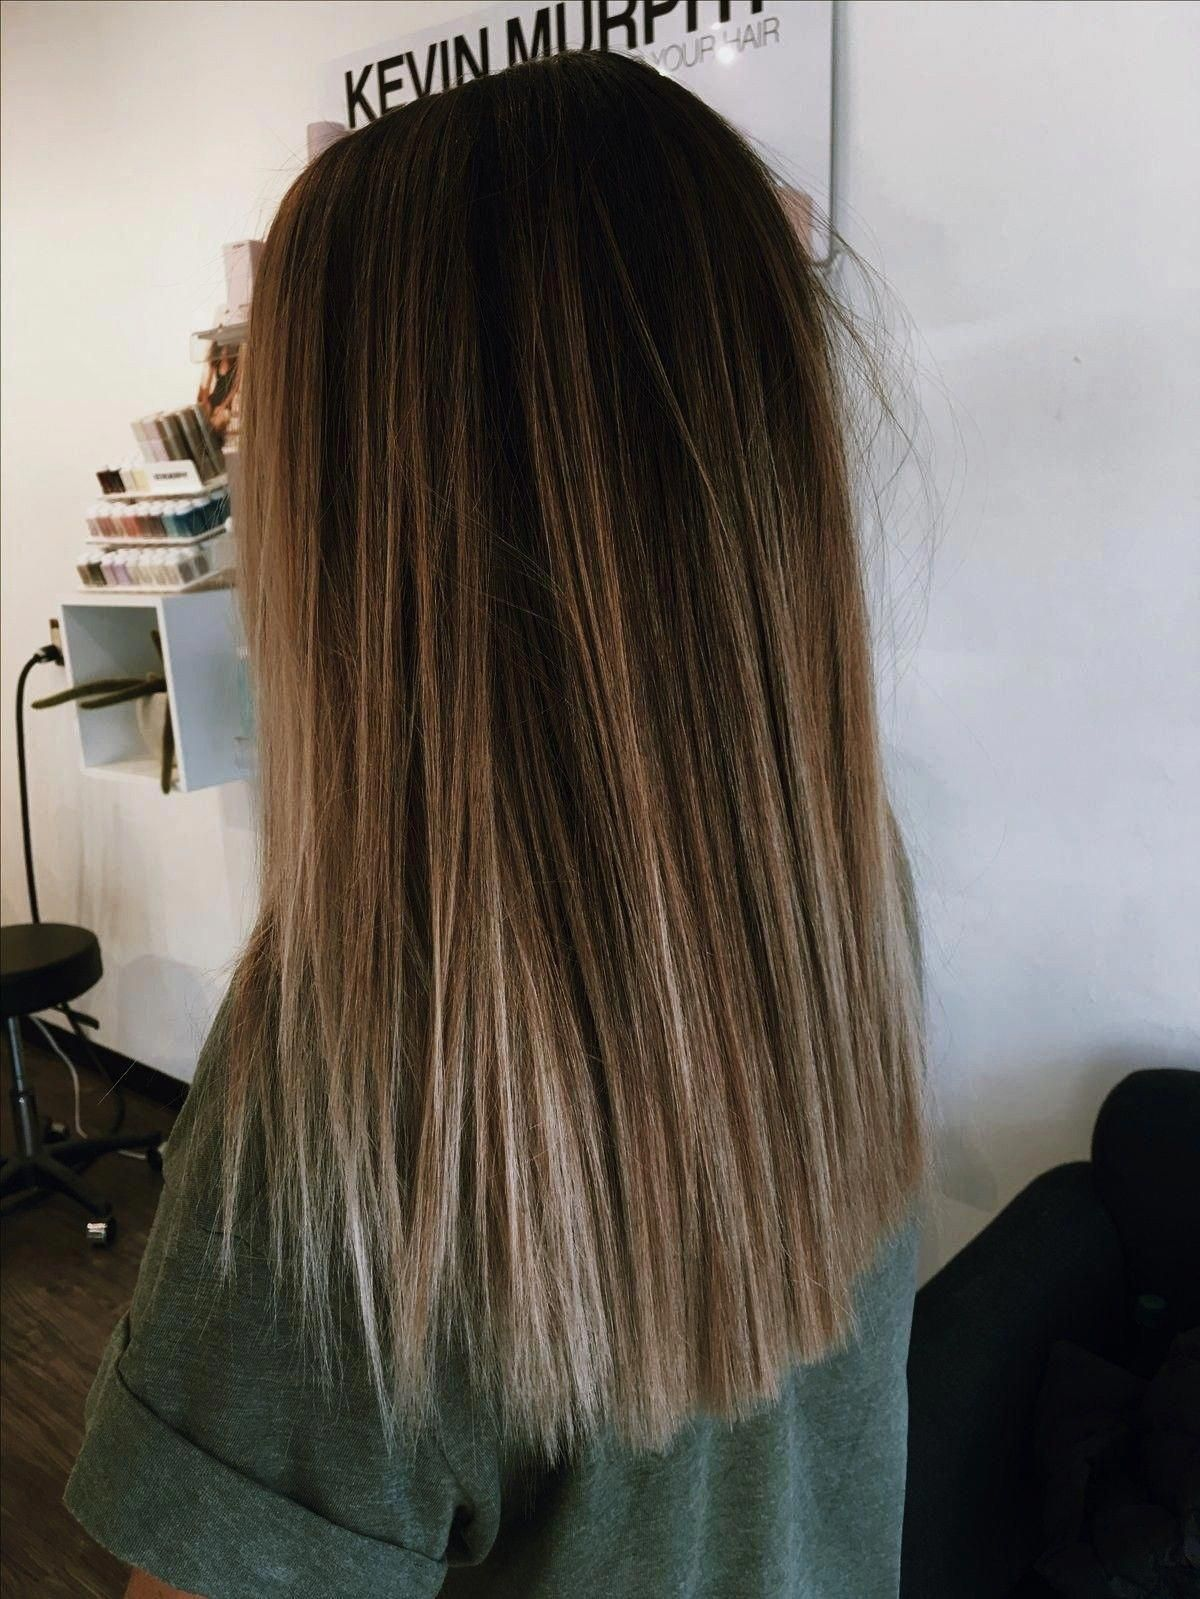 Summer Hair For Brunettes Straight Summer Hair For Brunettes Brunettes Hair Straight Summer In 2020 Straight Hairstyles Hair Styles Long Hair Styles